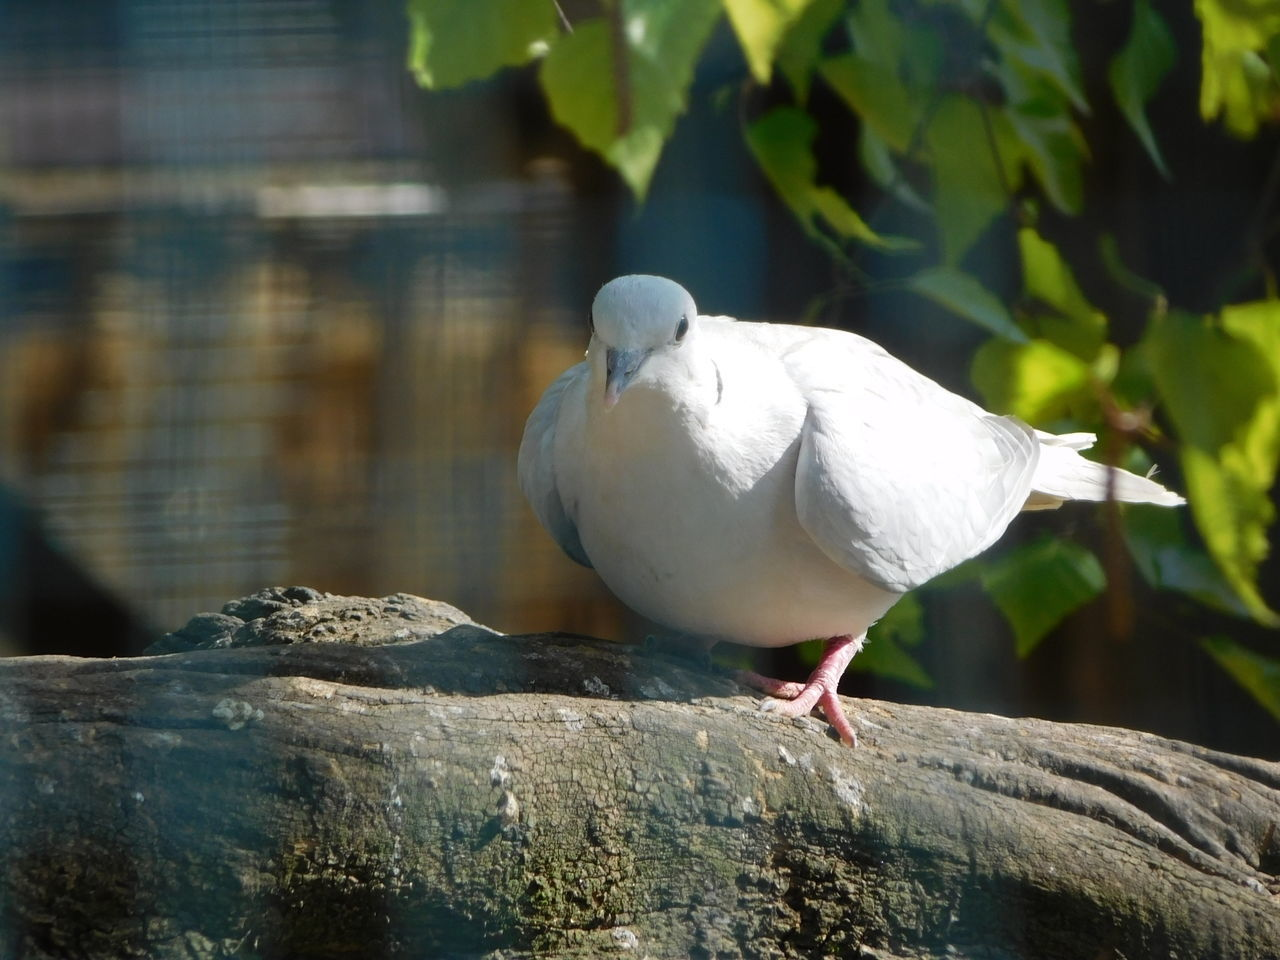 Animal Themes Animal Wildlife Animals In The Wild Bird Bird Photography Birds Birds Of EyeEm  Birds_collection Close-up Day Fluffy Focus On Foreground Nature No People One Animal Outdoors Perching Pigeon Pigeons Pigeonslife White Bird White Color